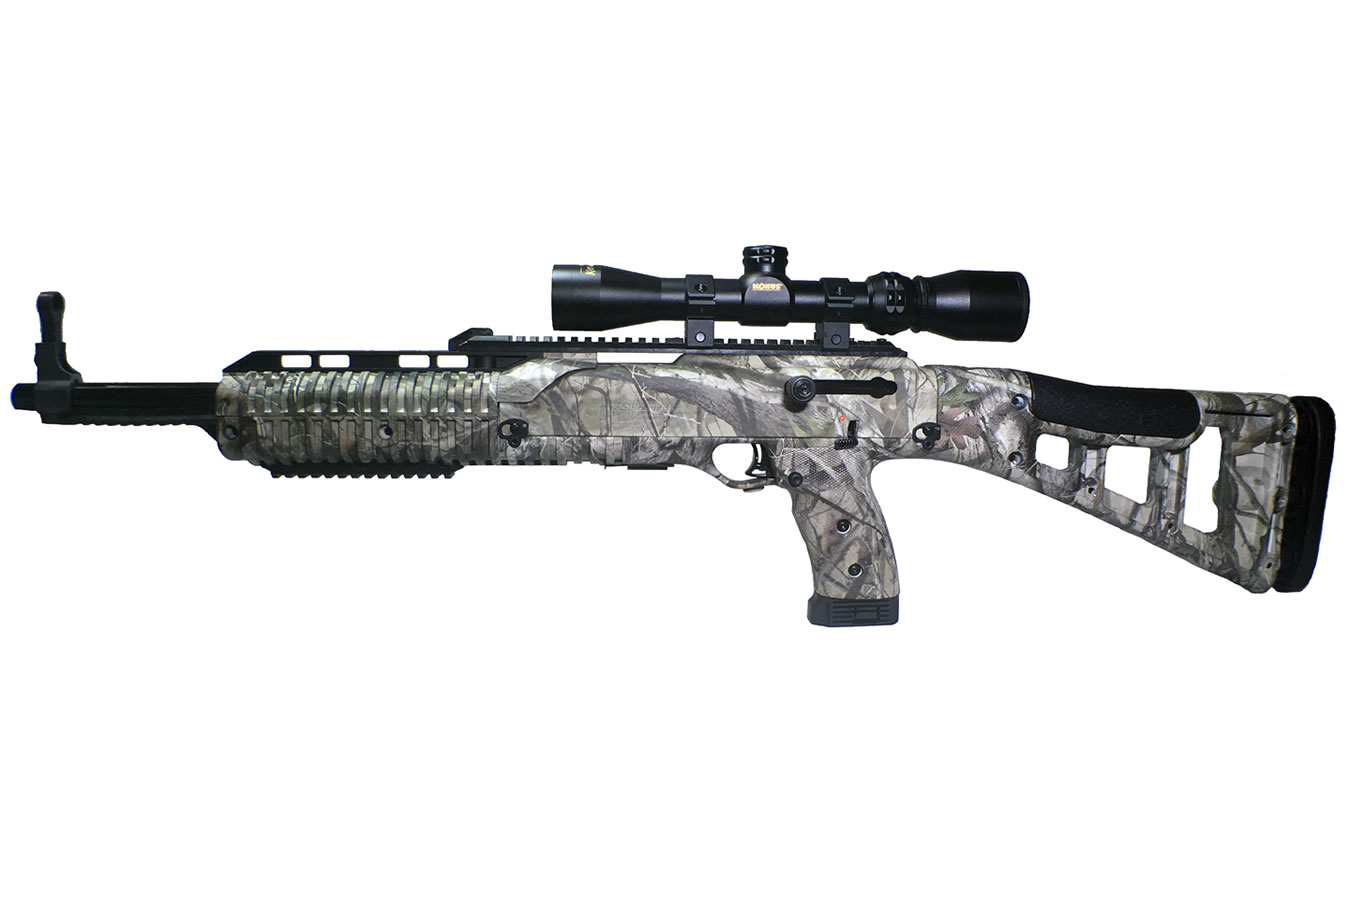 4595 HUNTER CARBINE WC CAMO WITH SCOPE